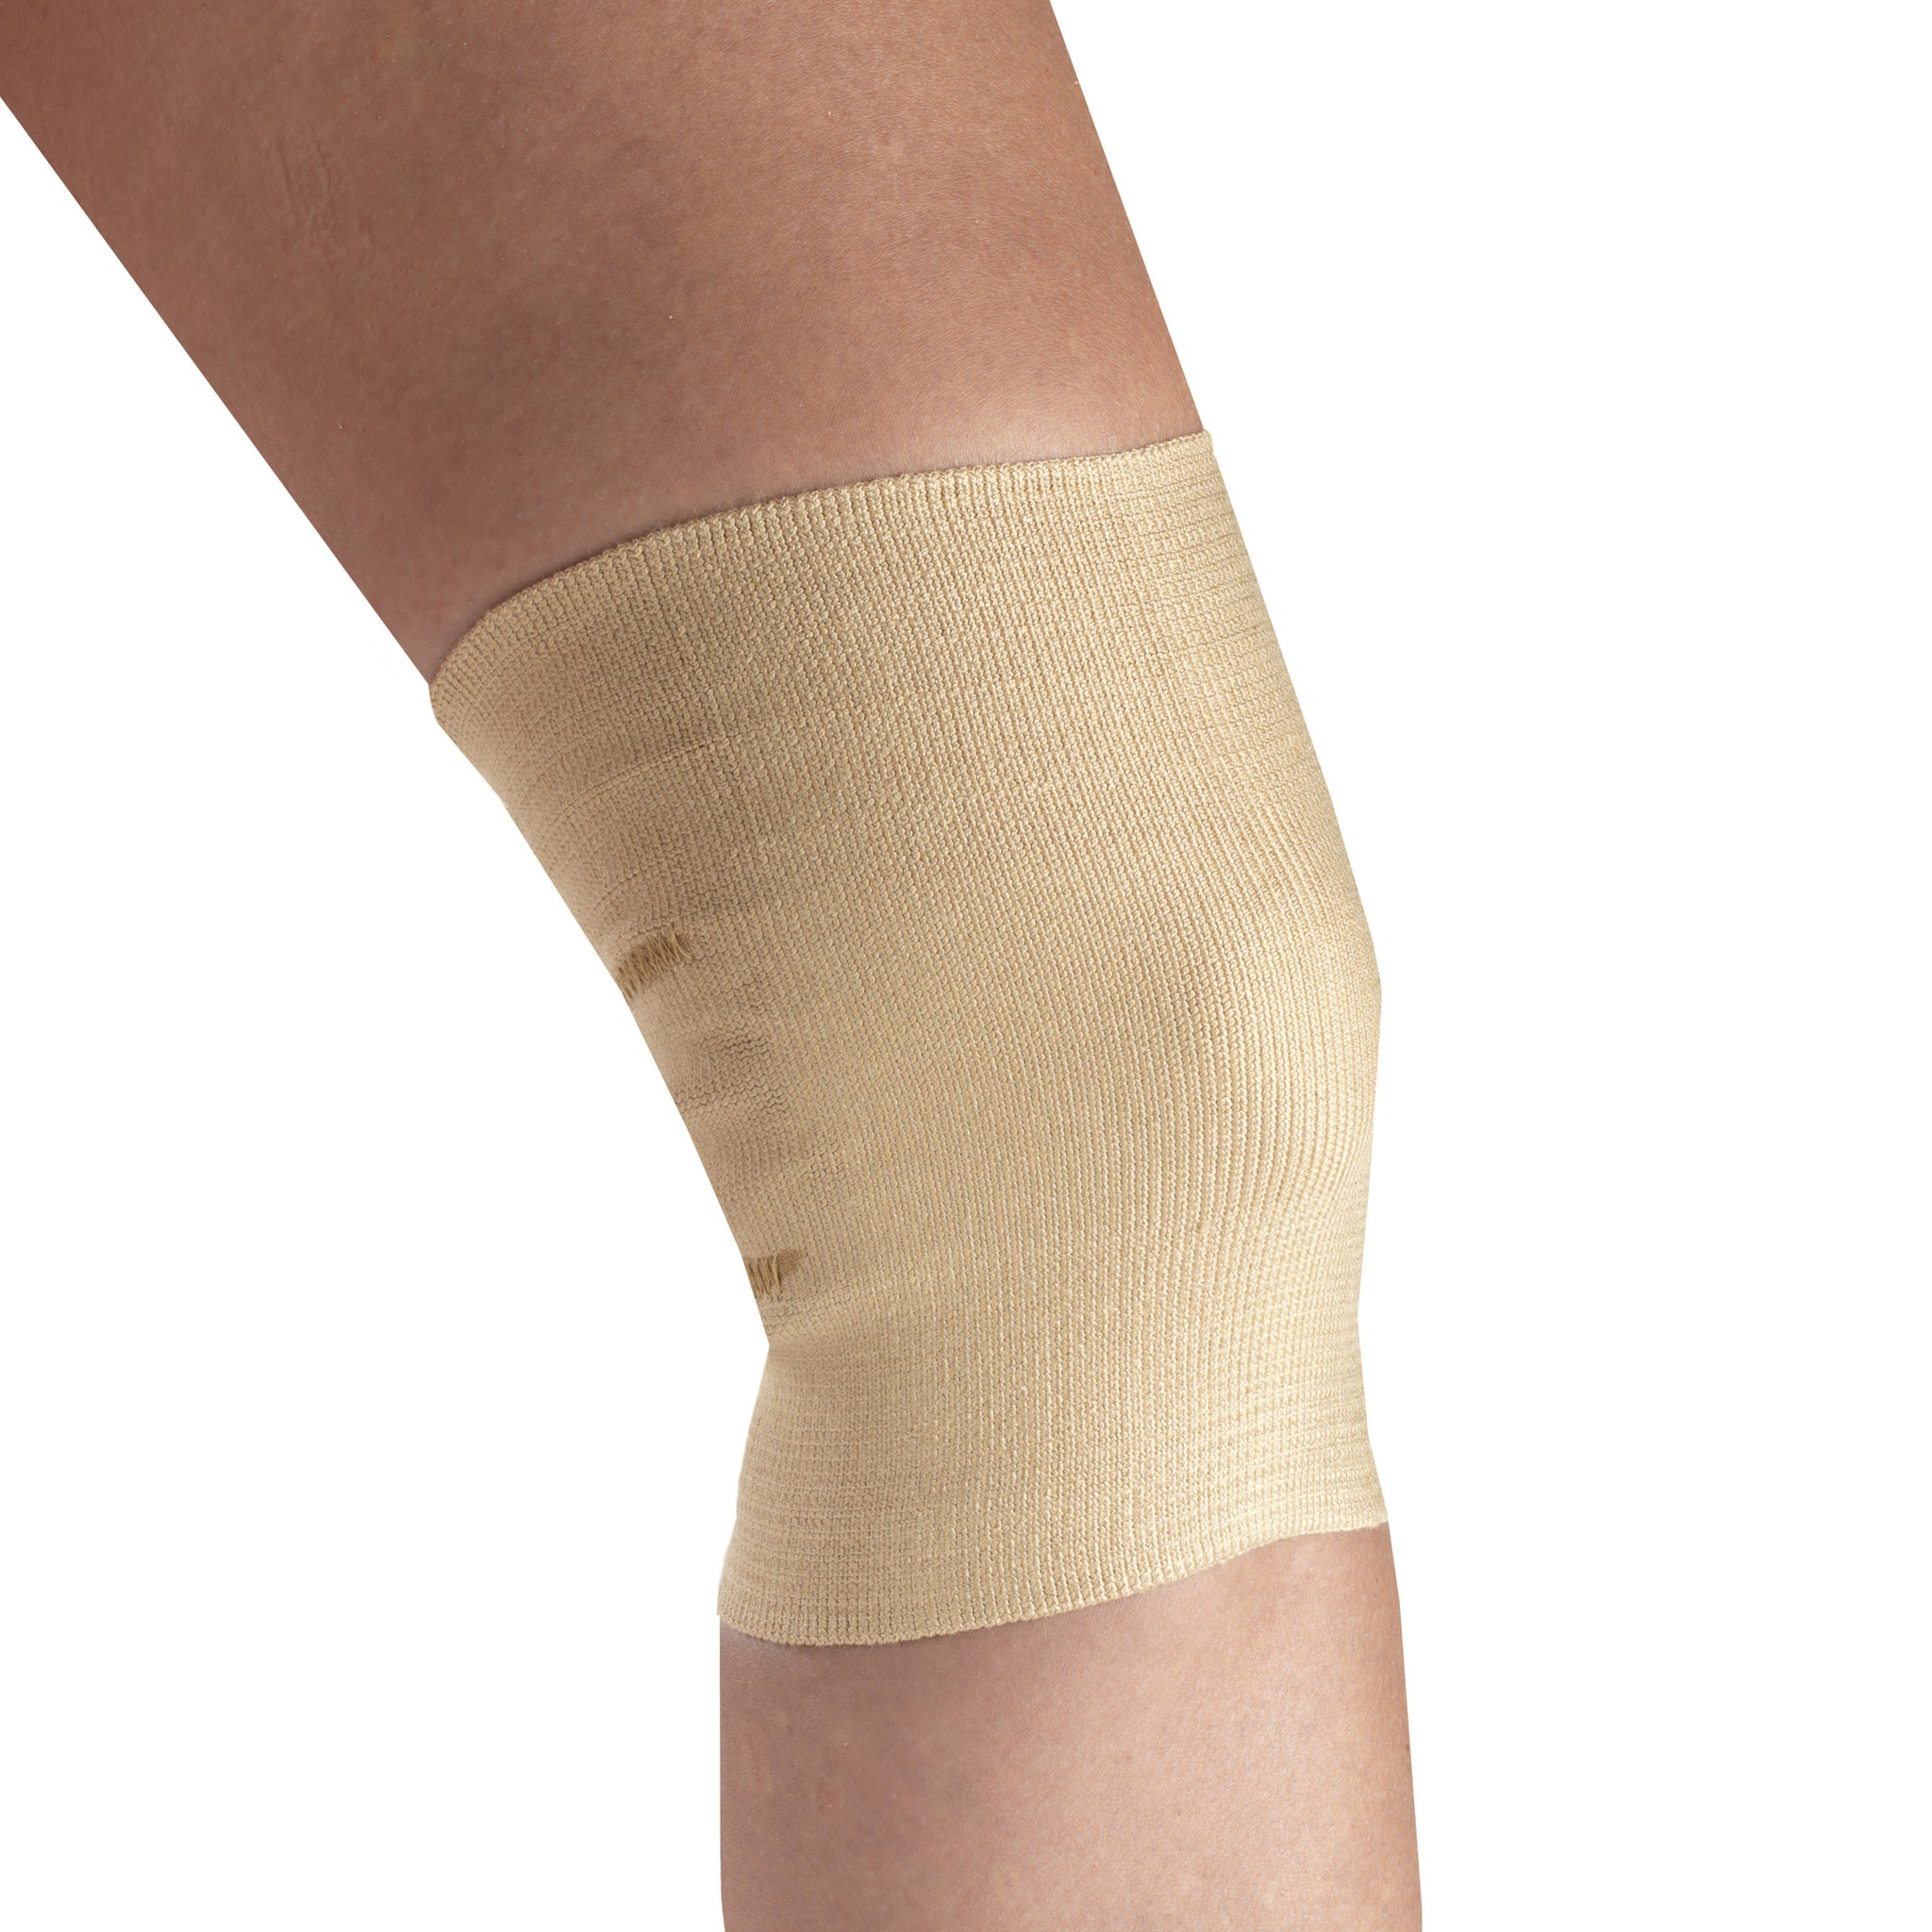 FIRM ELASTIC KNEE SUPPORT